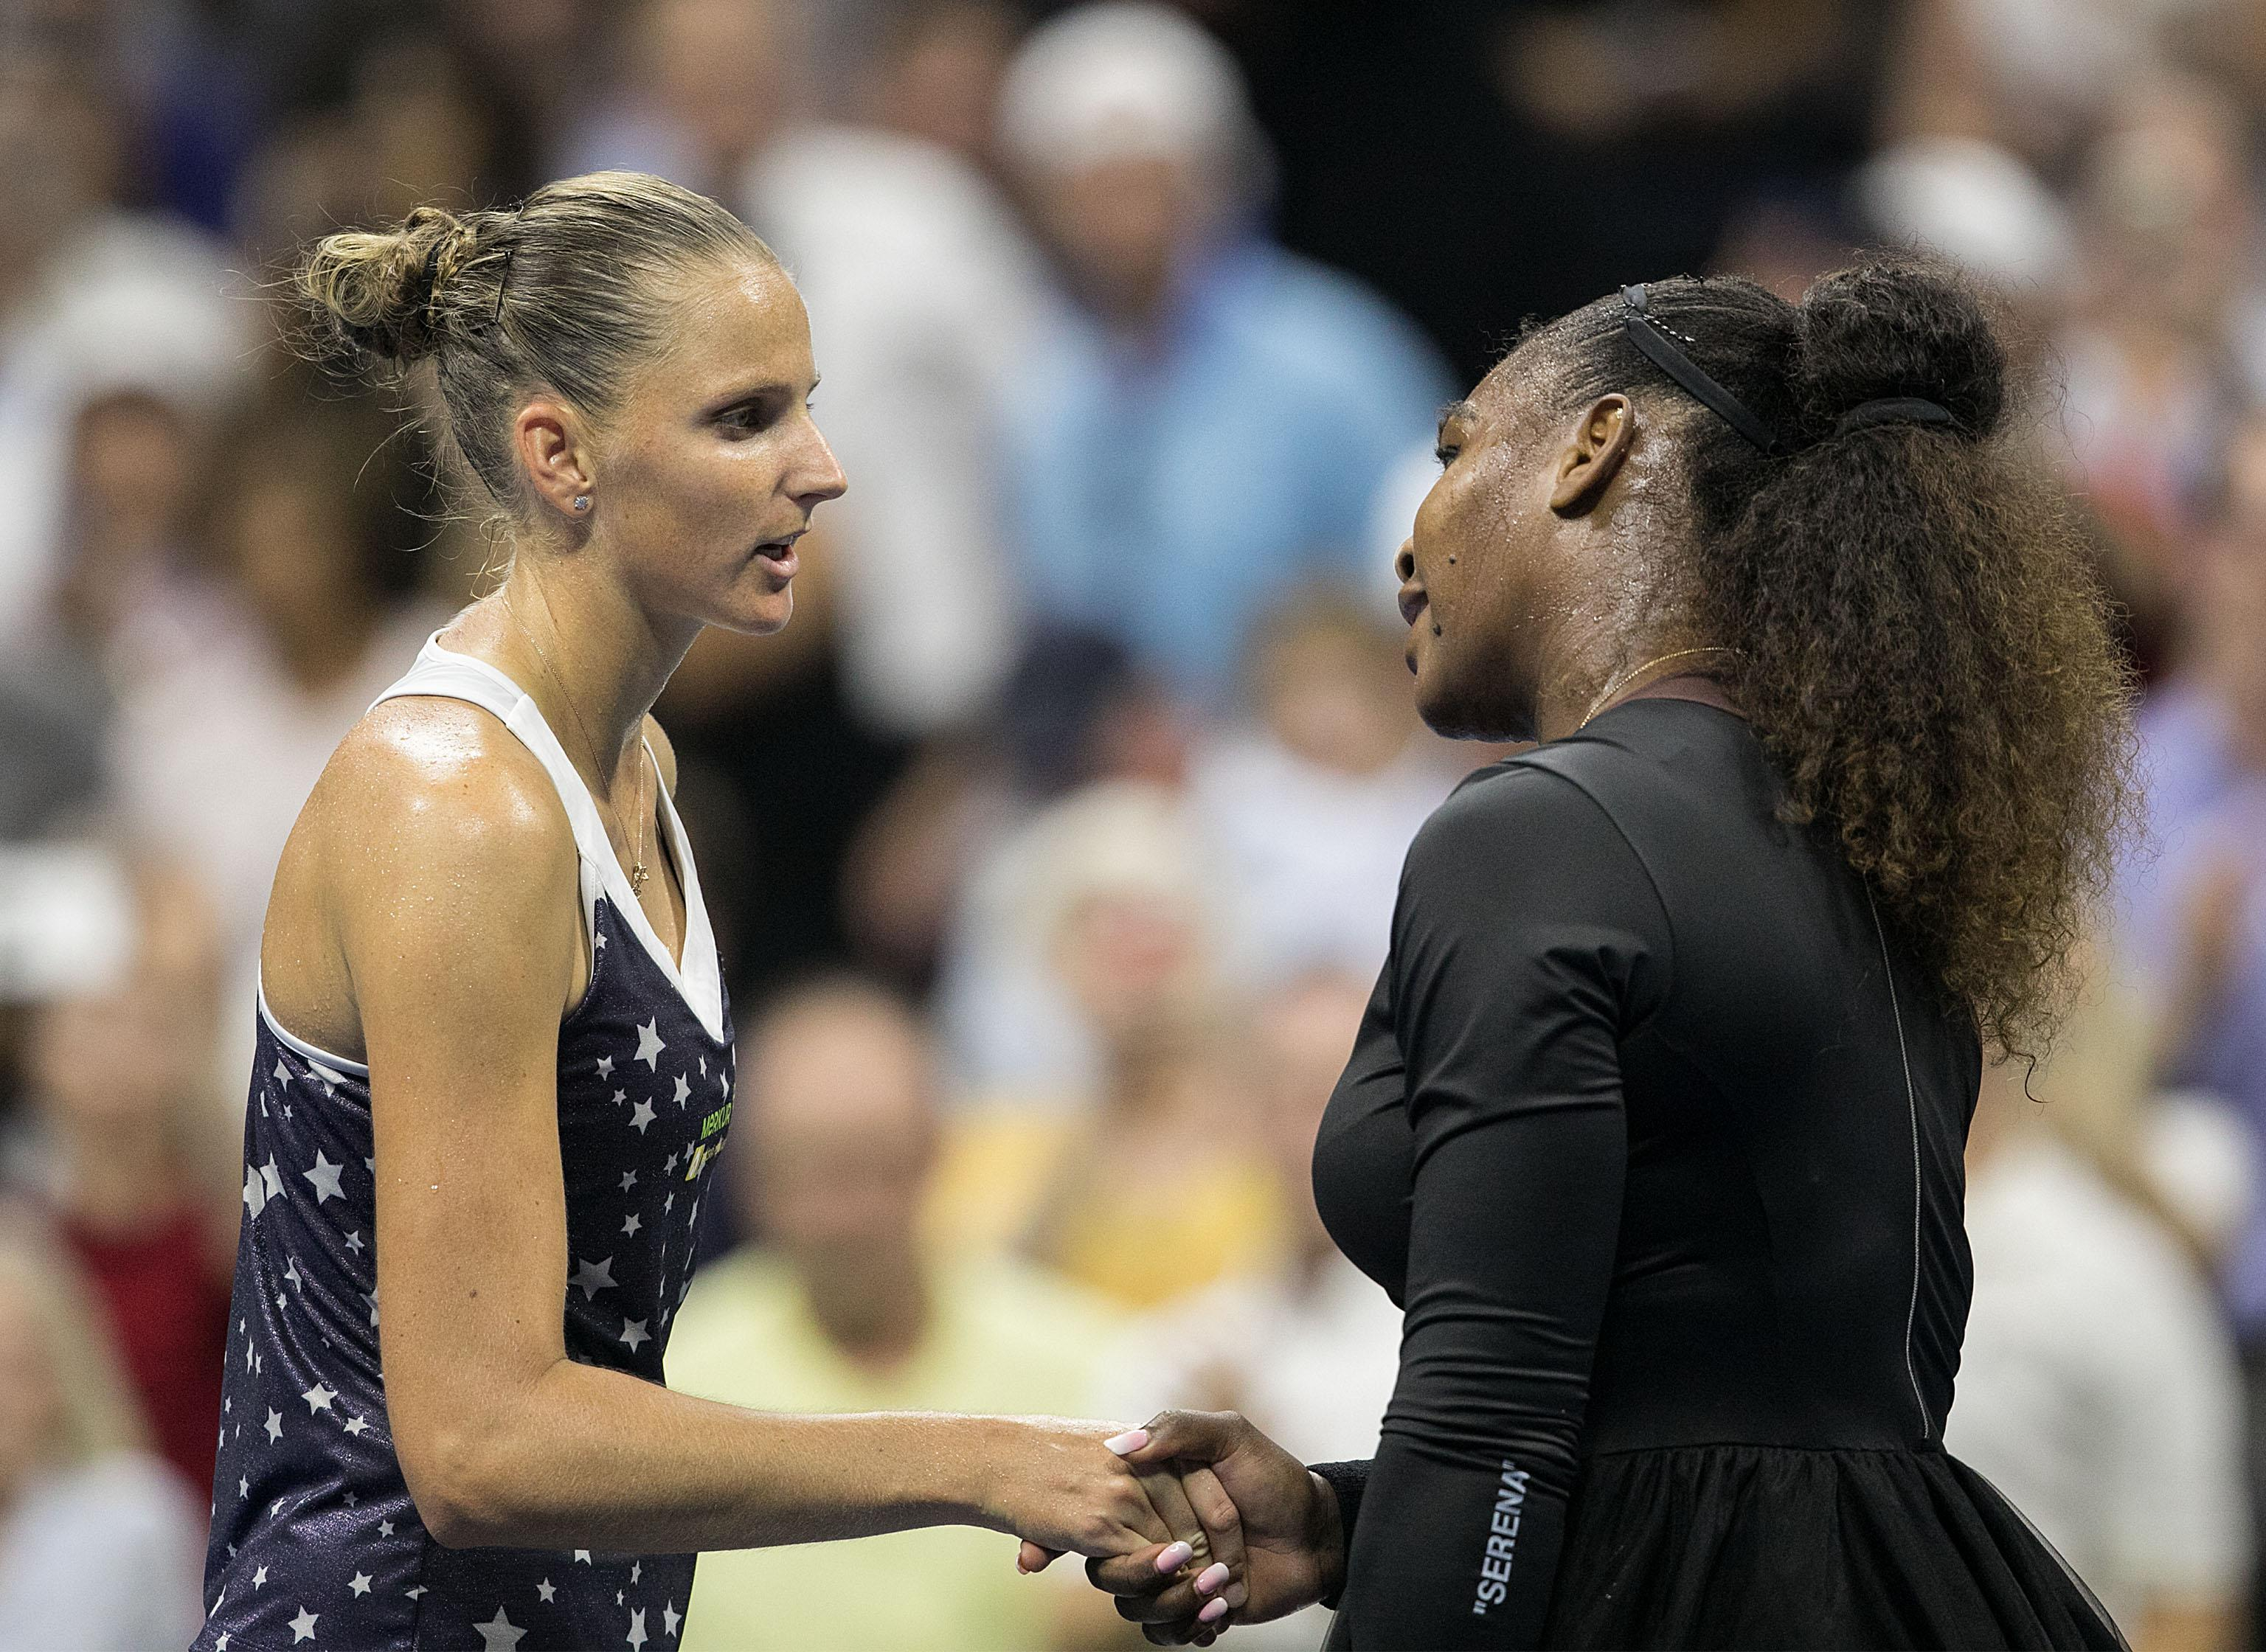 Serena Williams shakes hands with Czech opponent Karolina Pliskova after US Open quarter-final clash